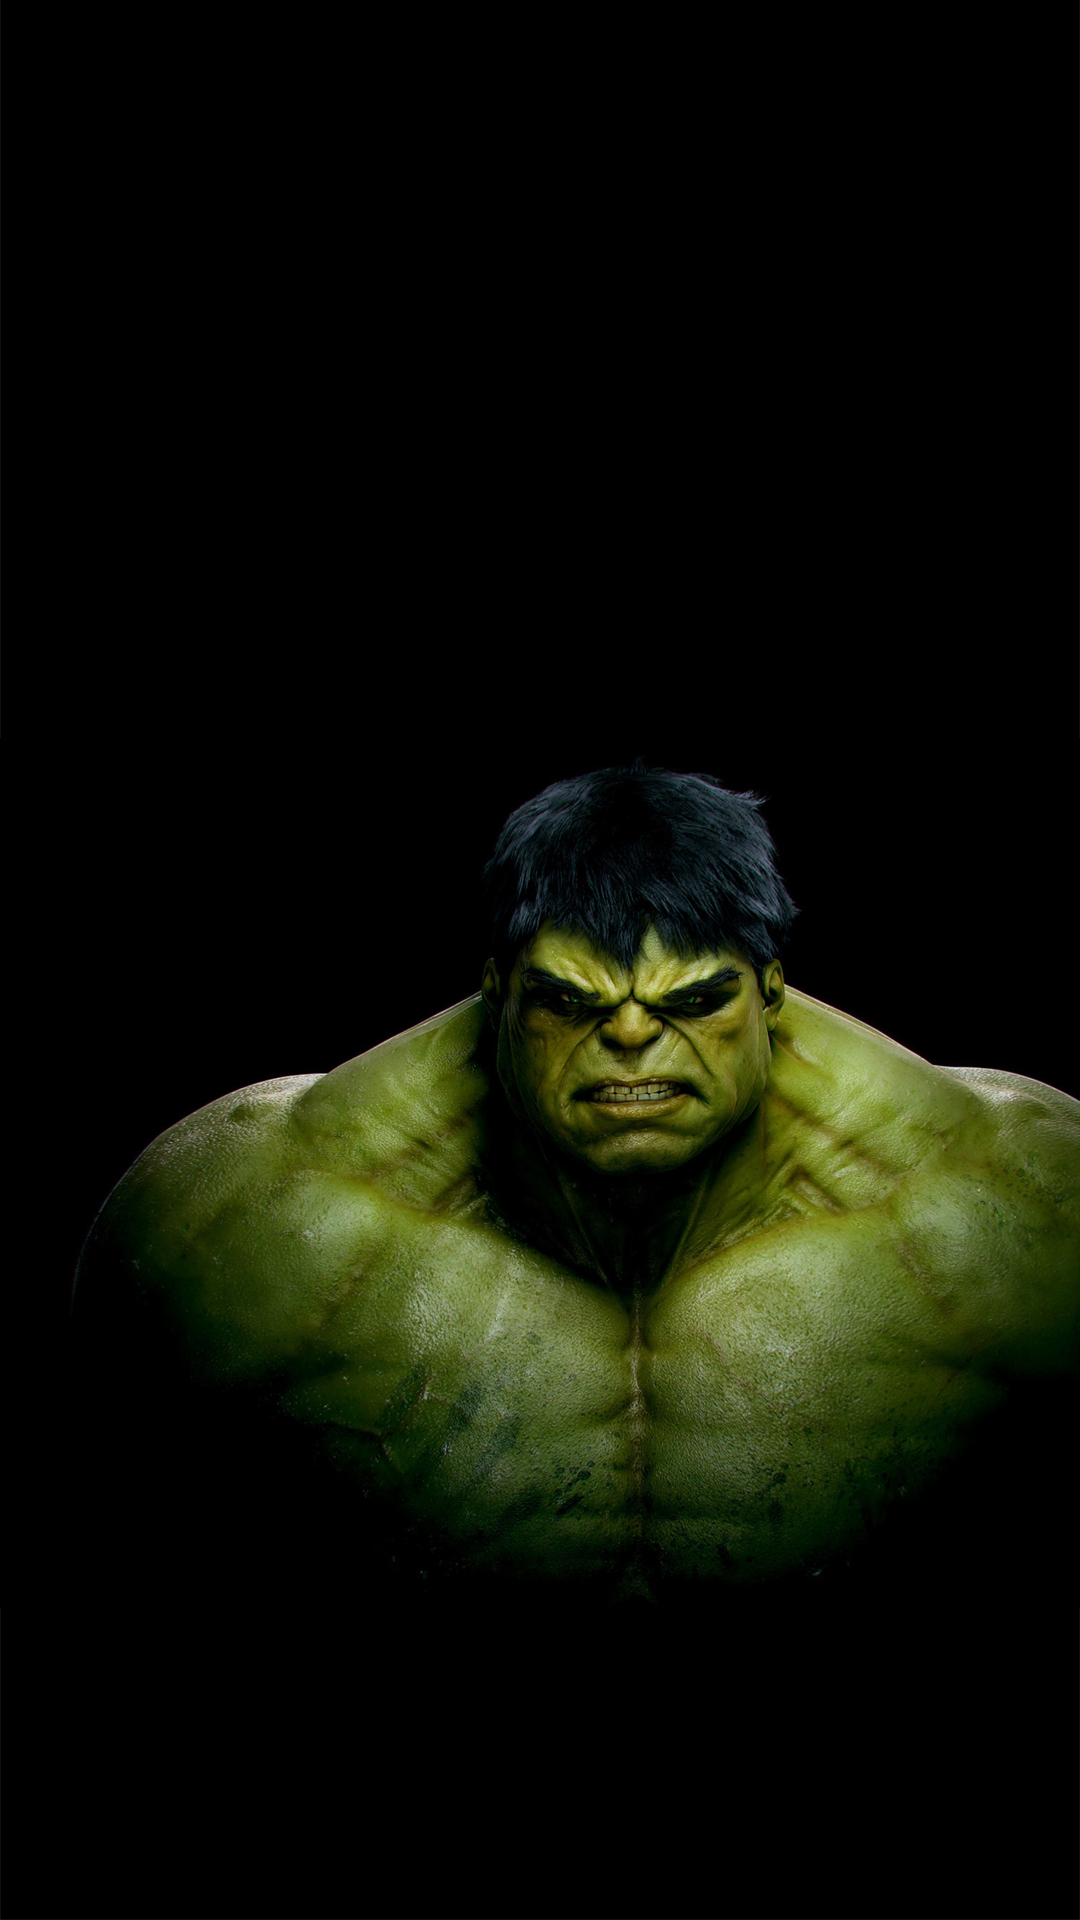 HQ Definition The Incredible Hulk Background Images for 1080x1920